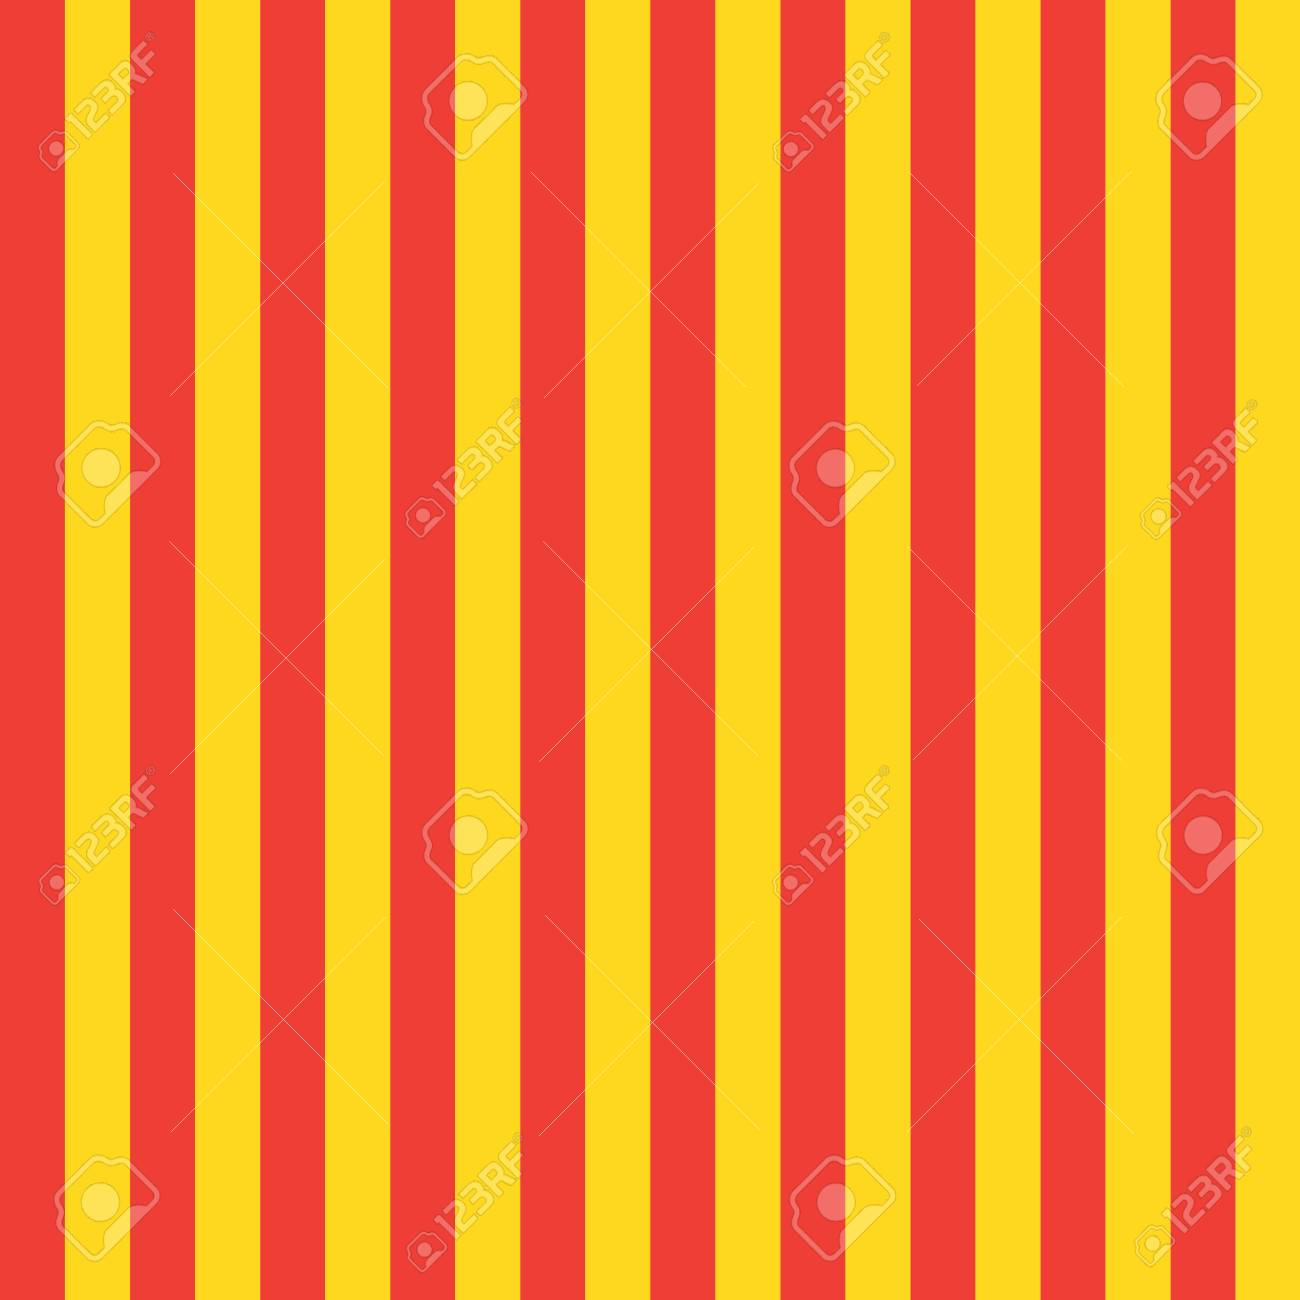 catalonia red and yellow color flag stripes seamless pattern